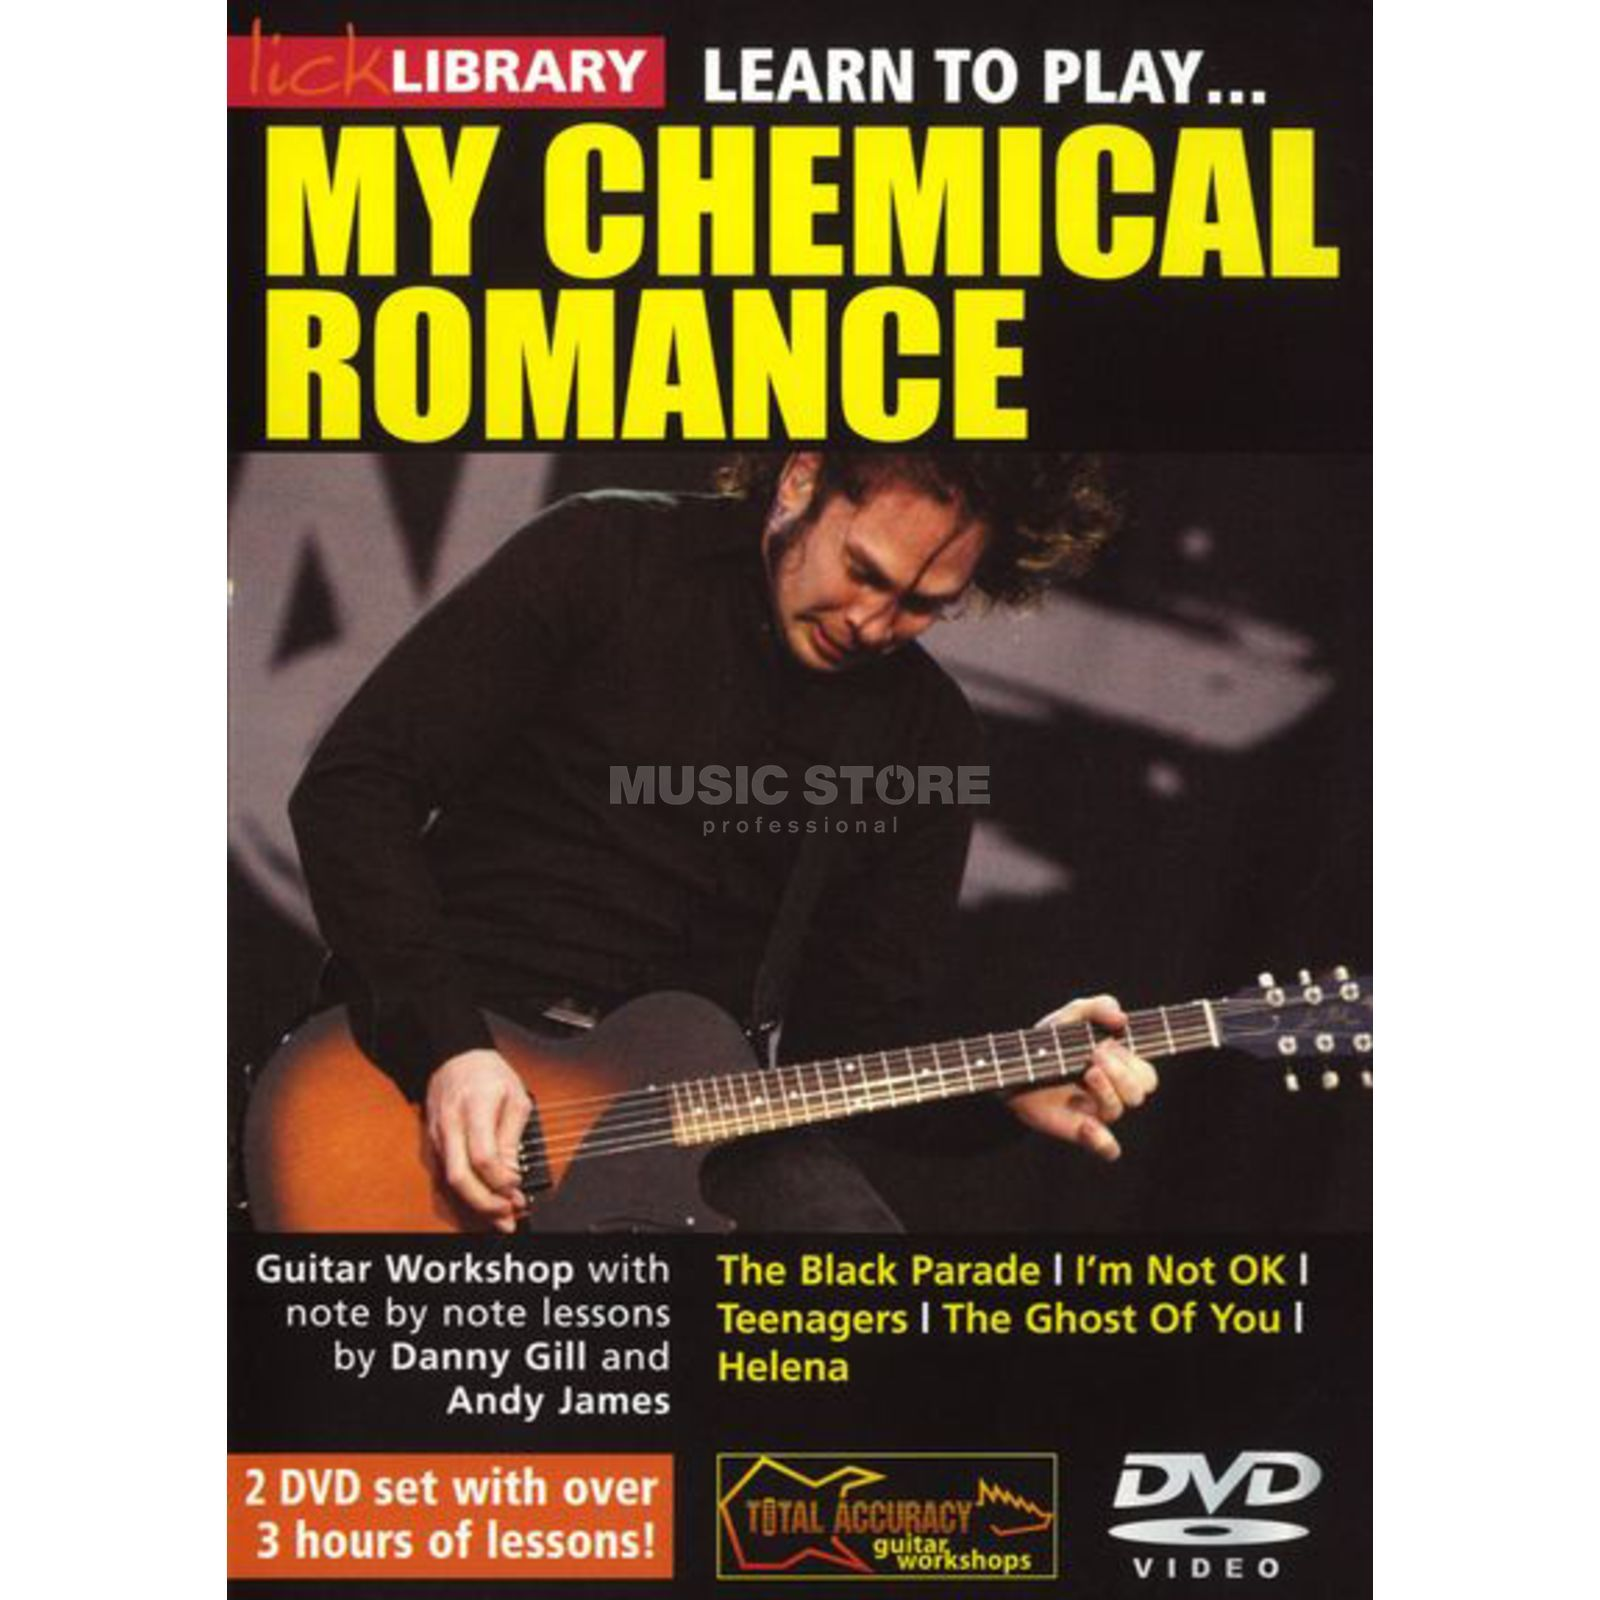 Roadrock International Lick Library: Learn To Play My Chemical Romance DVD Produktbild